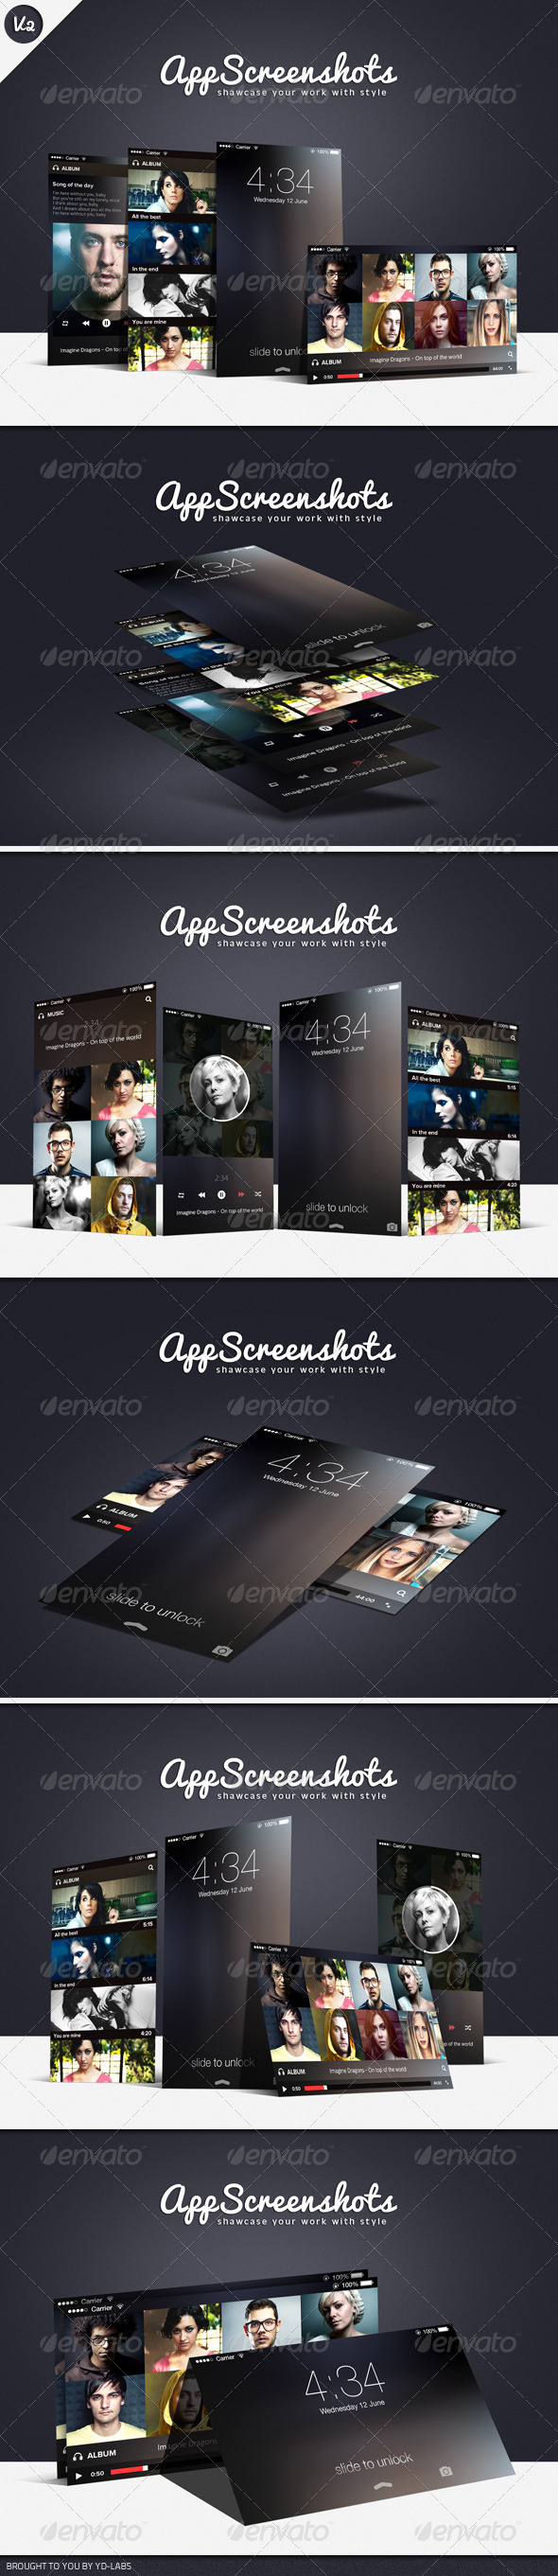 App Screenshot Mockups V2 - Mobile Displays